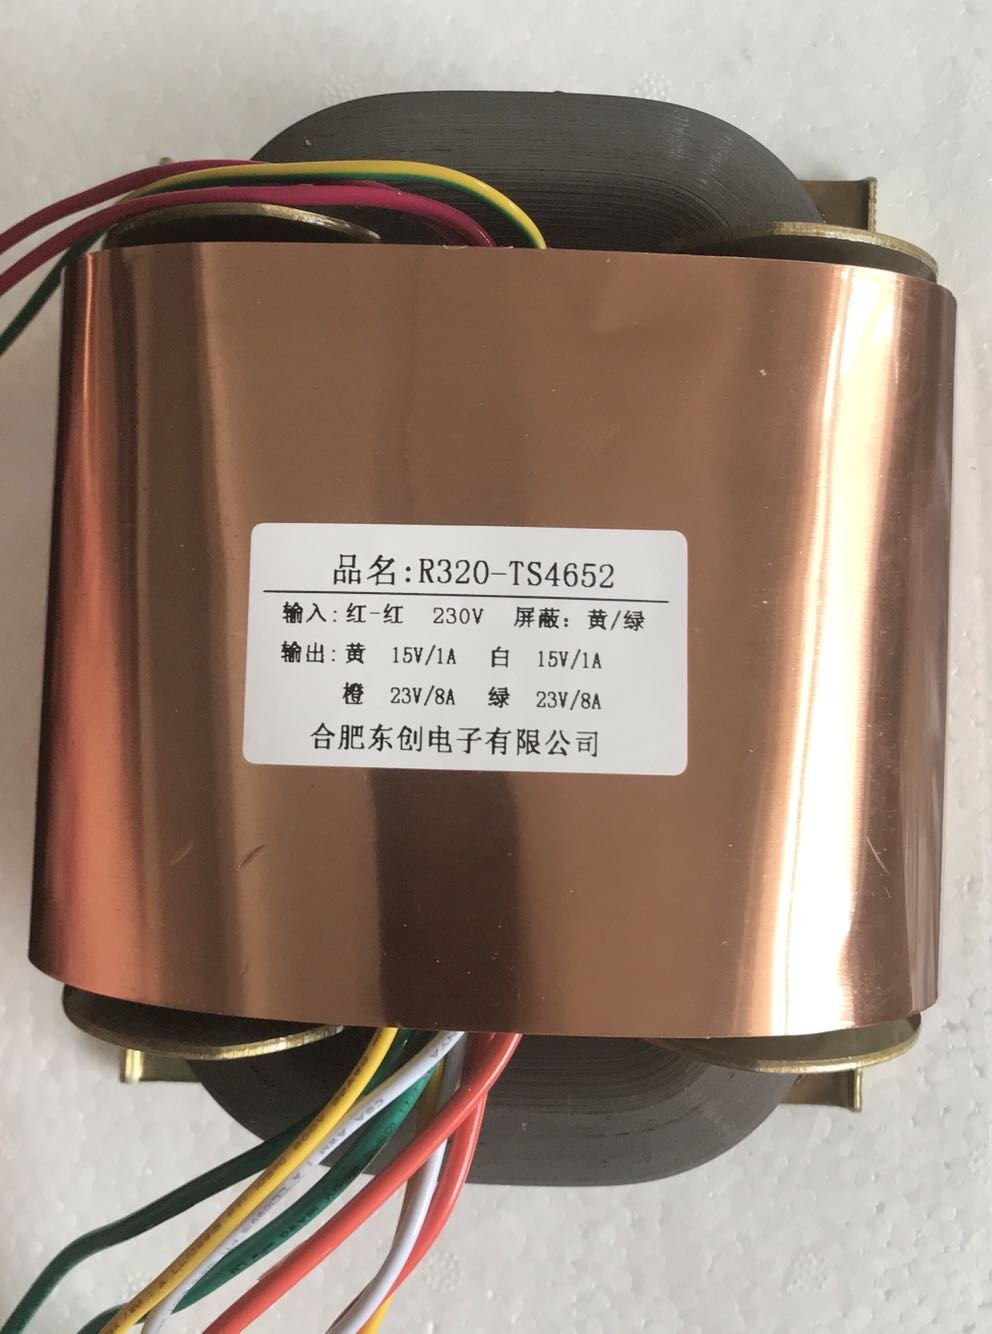 15V 1A 23V 8A 15V 1A 23V 8A R Core Transformer 400VA R320 custom transformer 220V copper shield amplifier Power supply стоимость